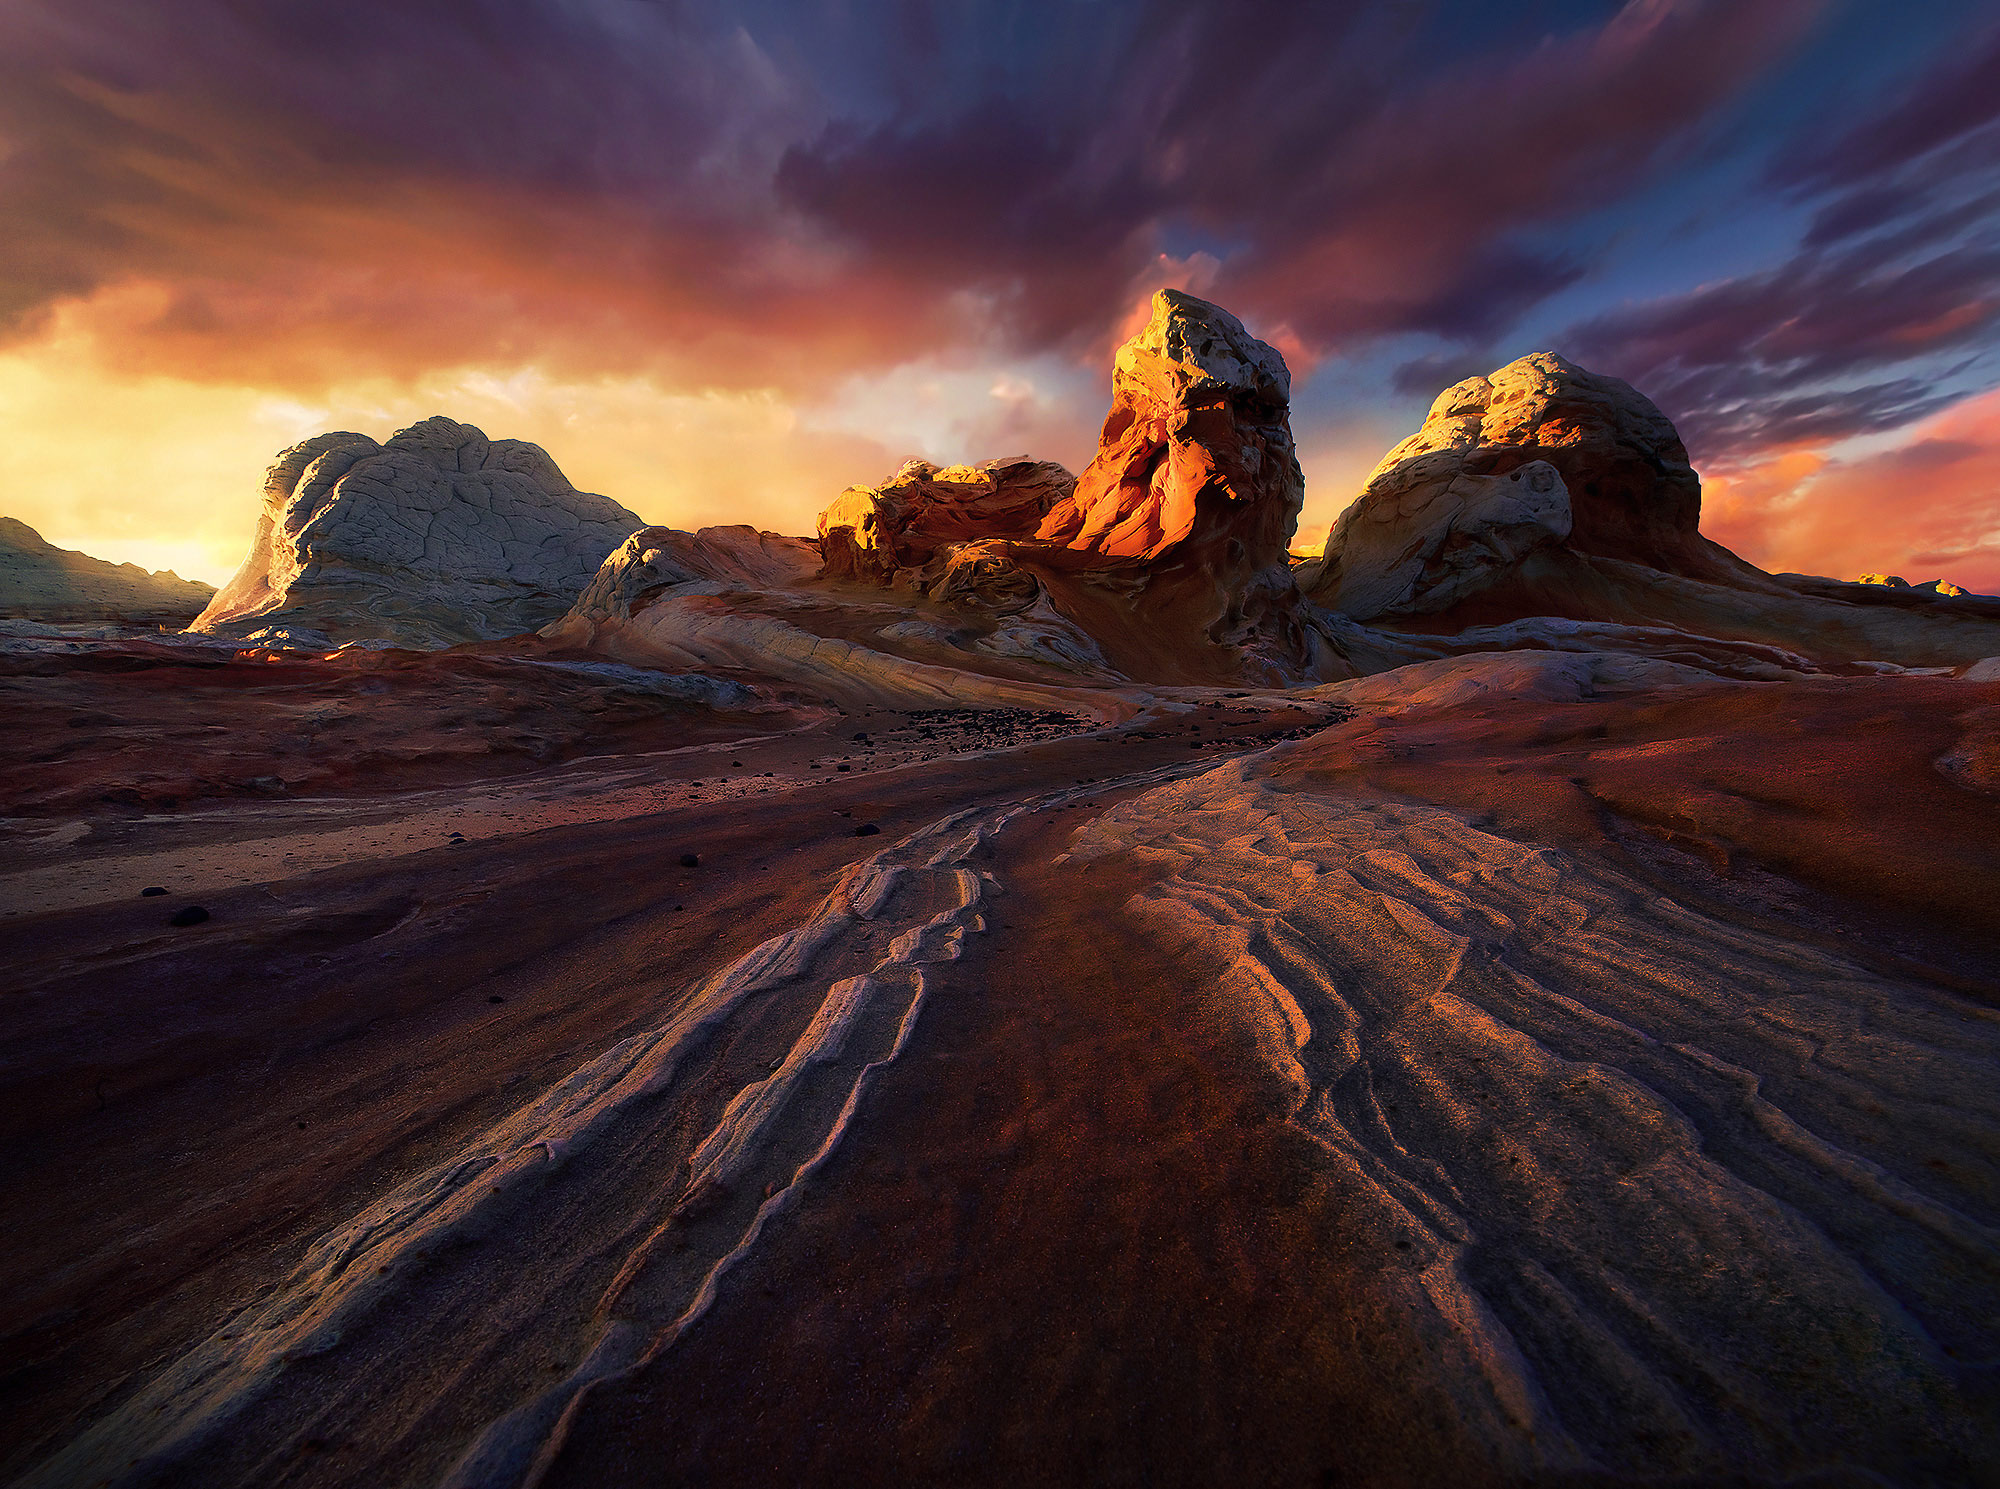 Explosive sunset light and dark, dramatic skies over sandstone formations in Arizona.